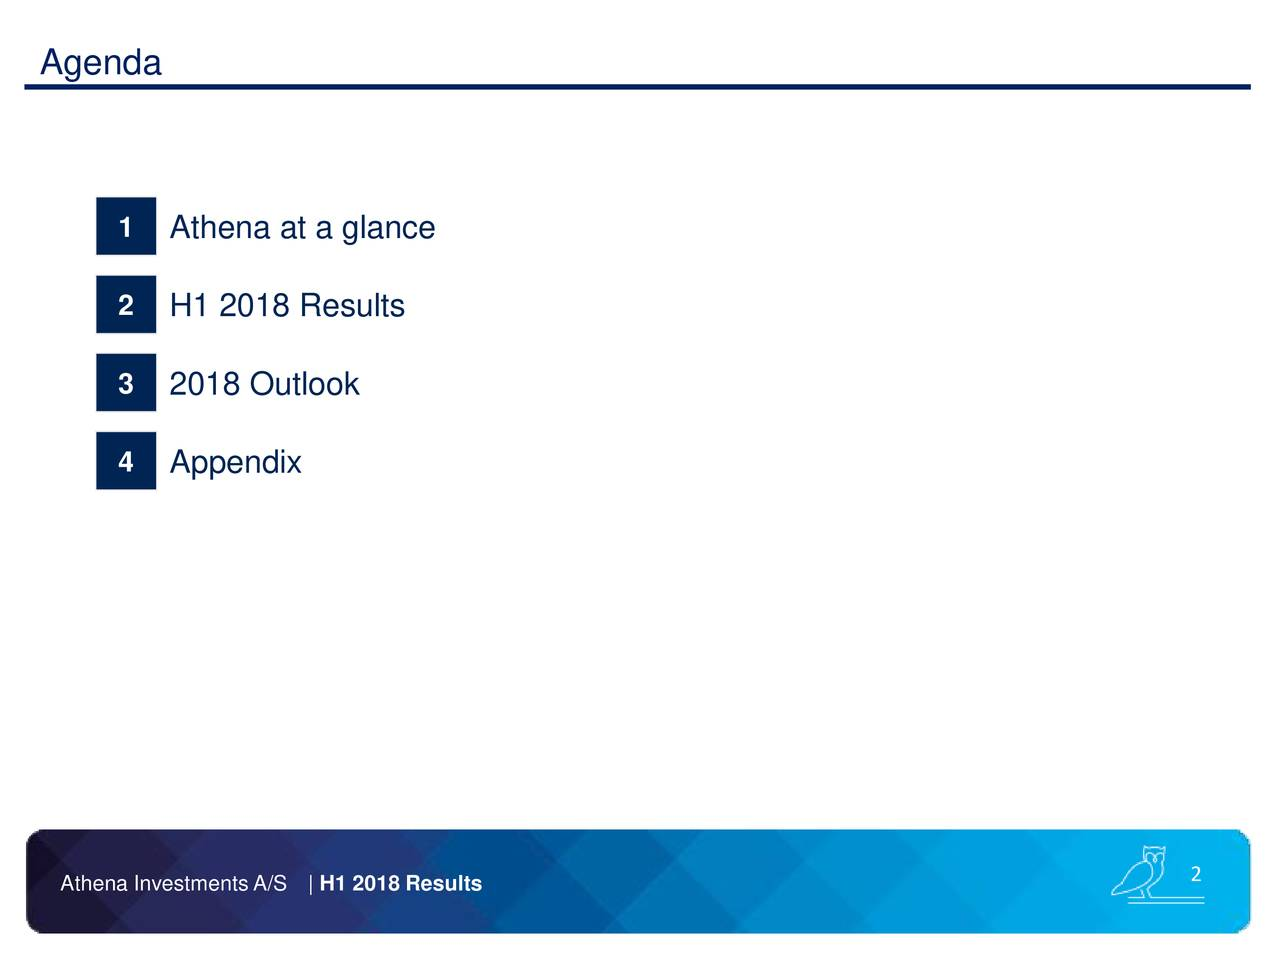 1 Athena at a glance 2 H1 2018 Results 3 2018 Outlook 4 Appendix 2 Athena Investments A/S | H1 2018 Results